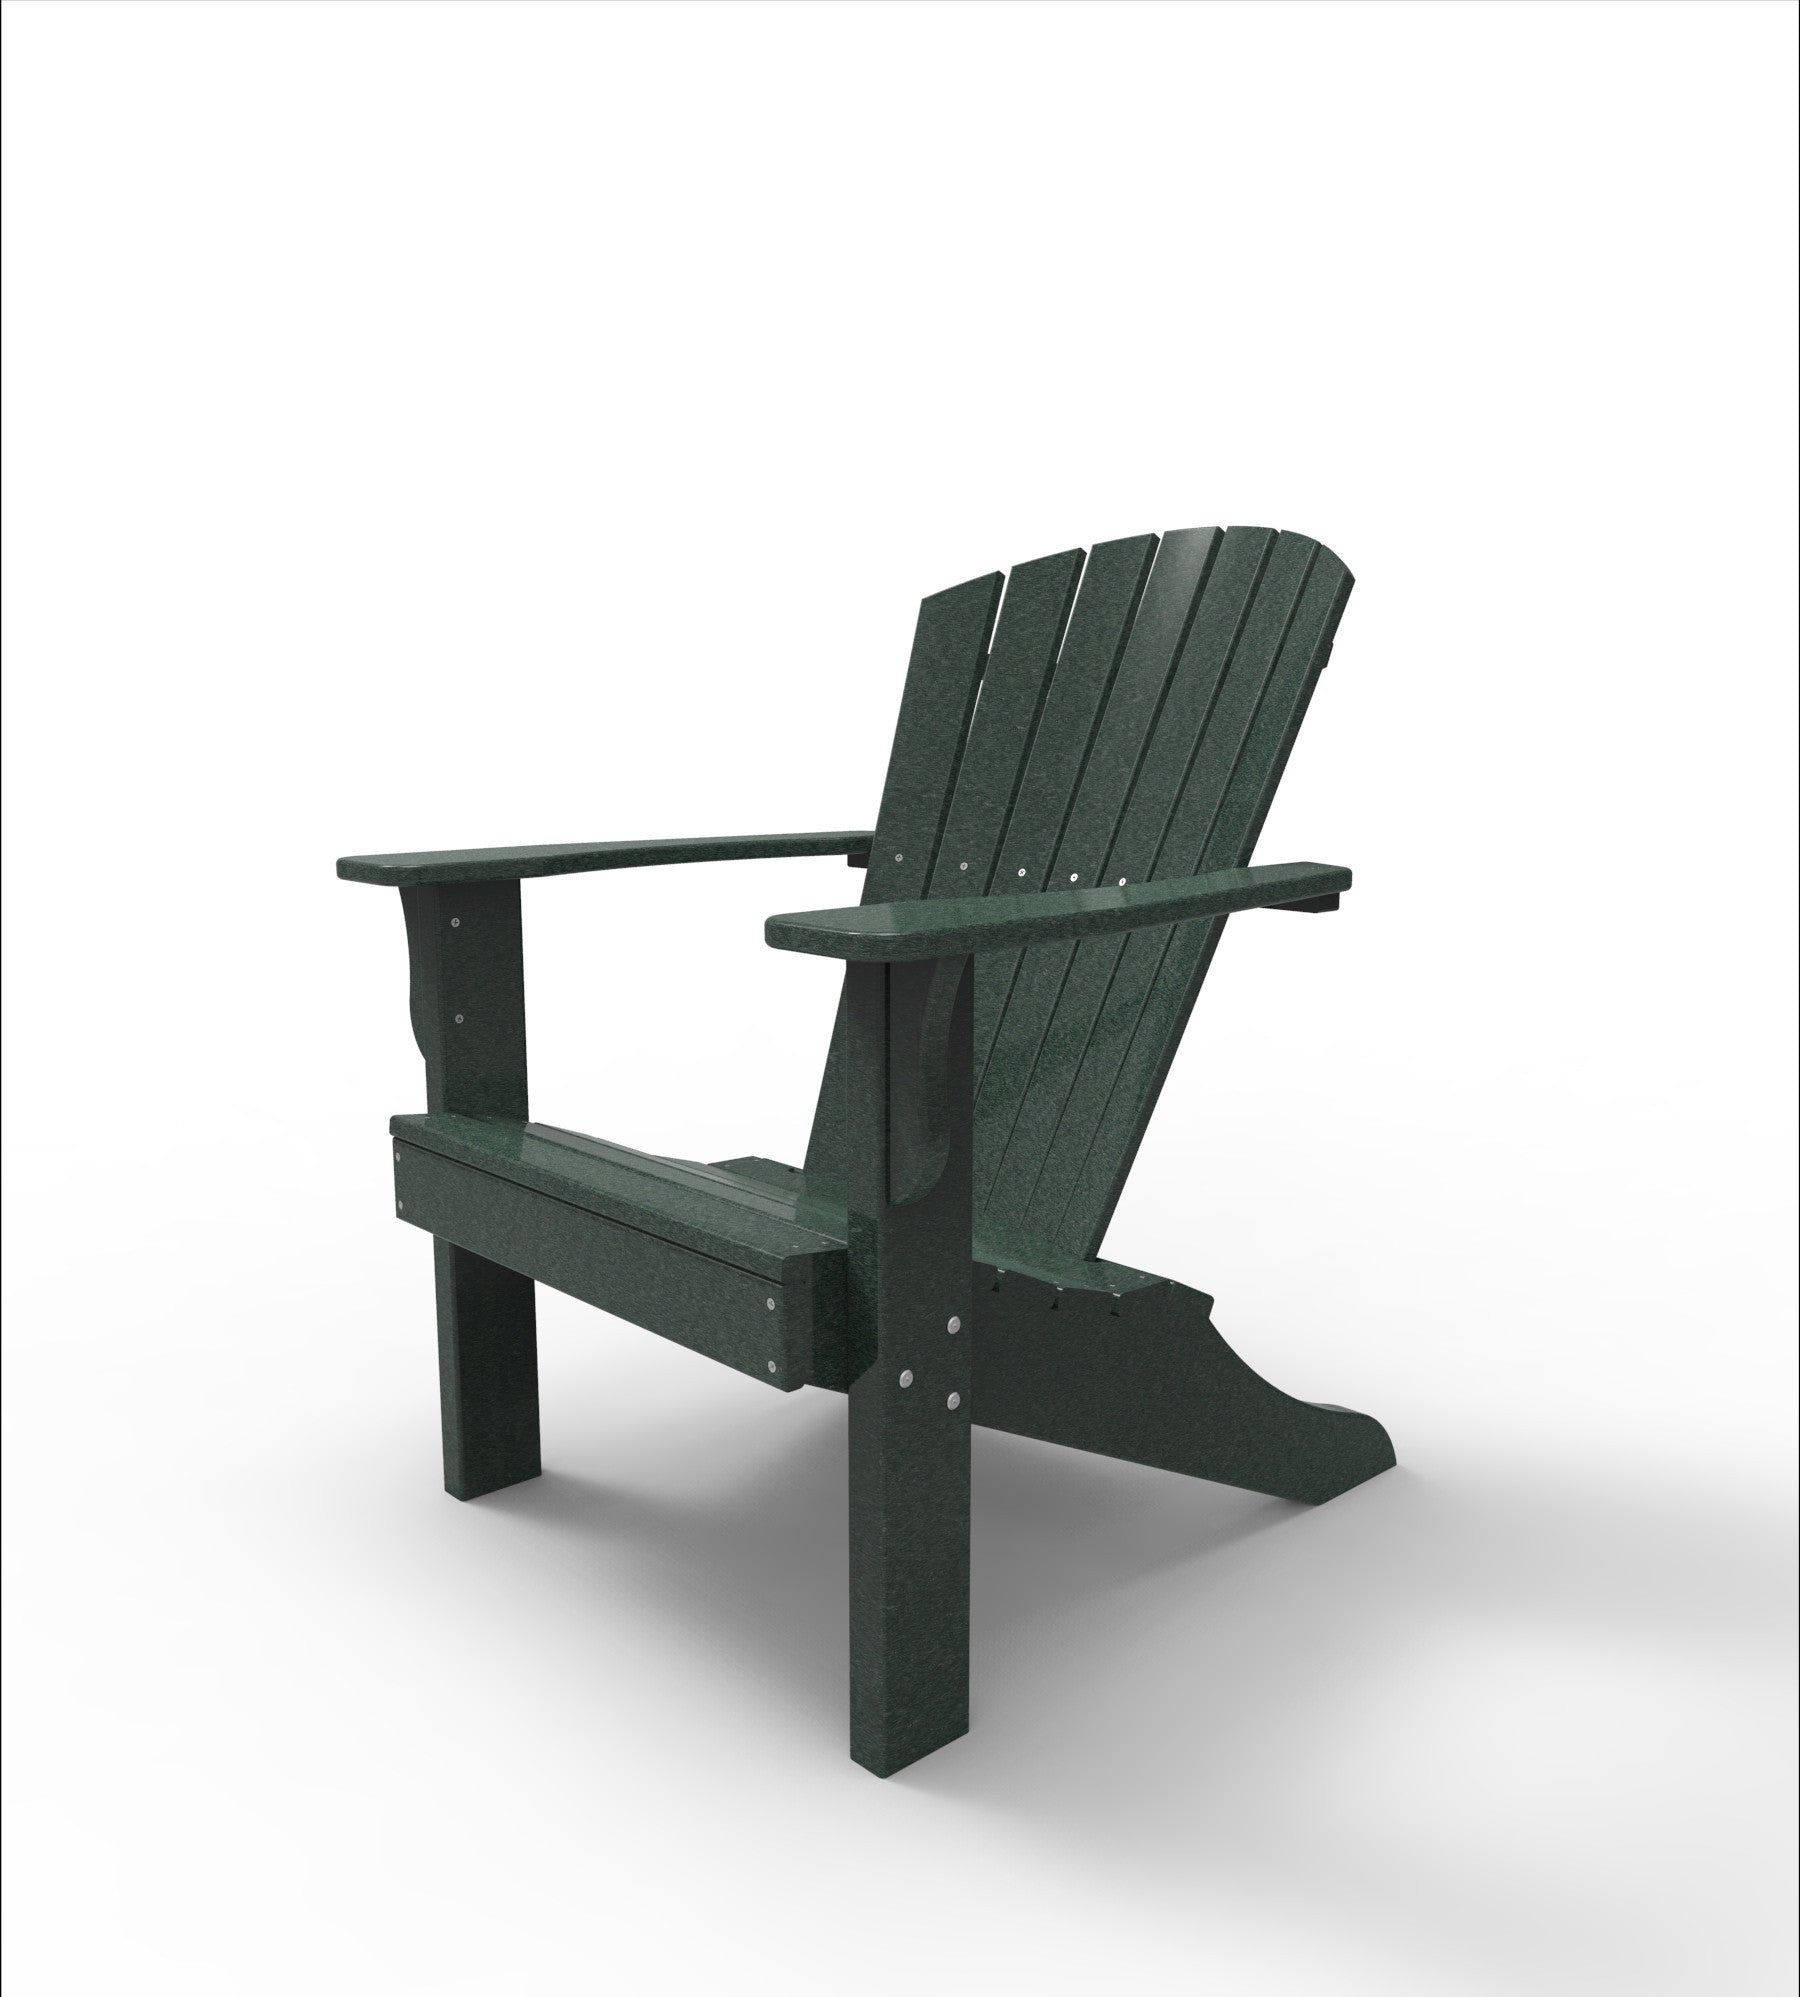 ... Hyannis Adirondack Chair   Malibu Outdoor Living ...